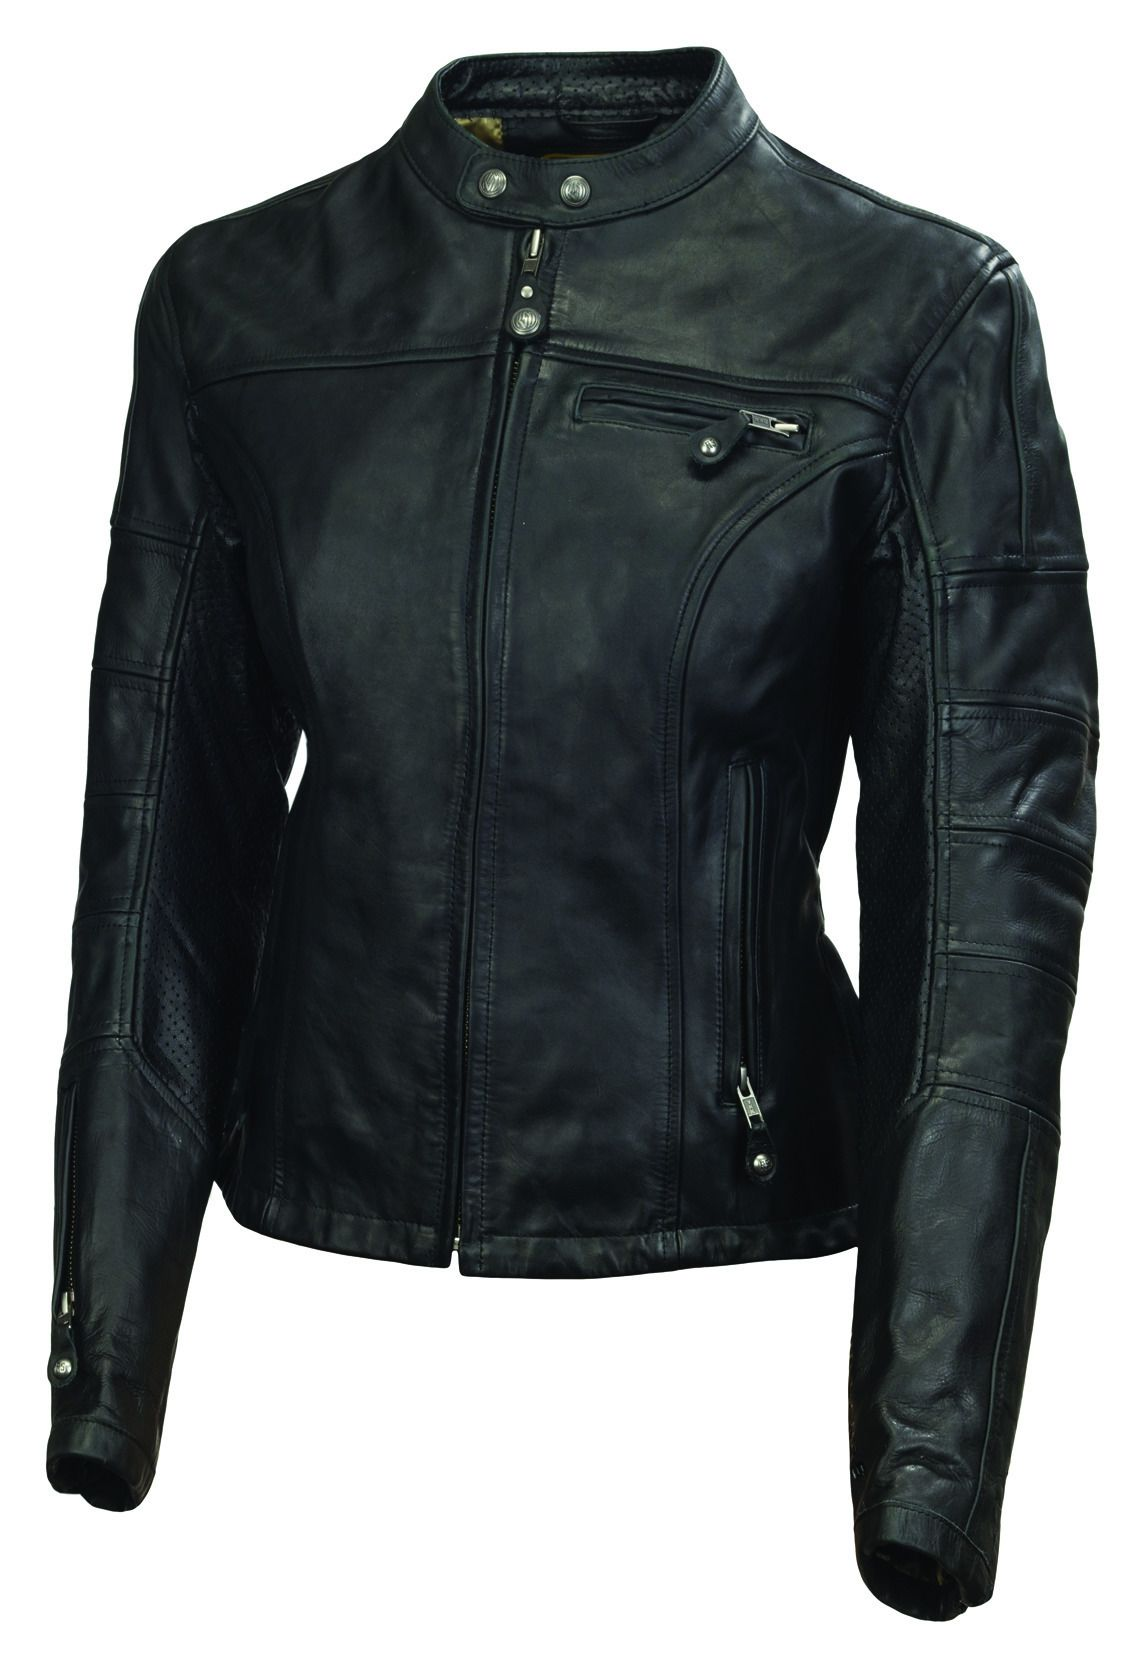 Here at Motorcycle House, we are offering the latest designs of Motorcycle Jackets for Women. These jackets are quite perfect in fit and figure hugging, bringing out the most optimum of curves of feminism. Black Brand Women's Sapphire Leather Jacket $ Compare Alpinestars Stella Amok Air Drystar Jacket $ $